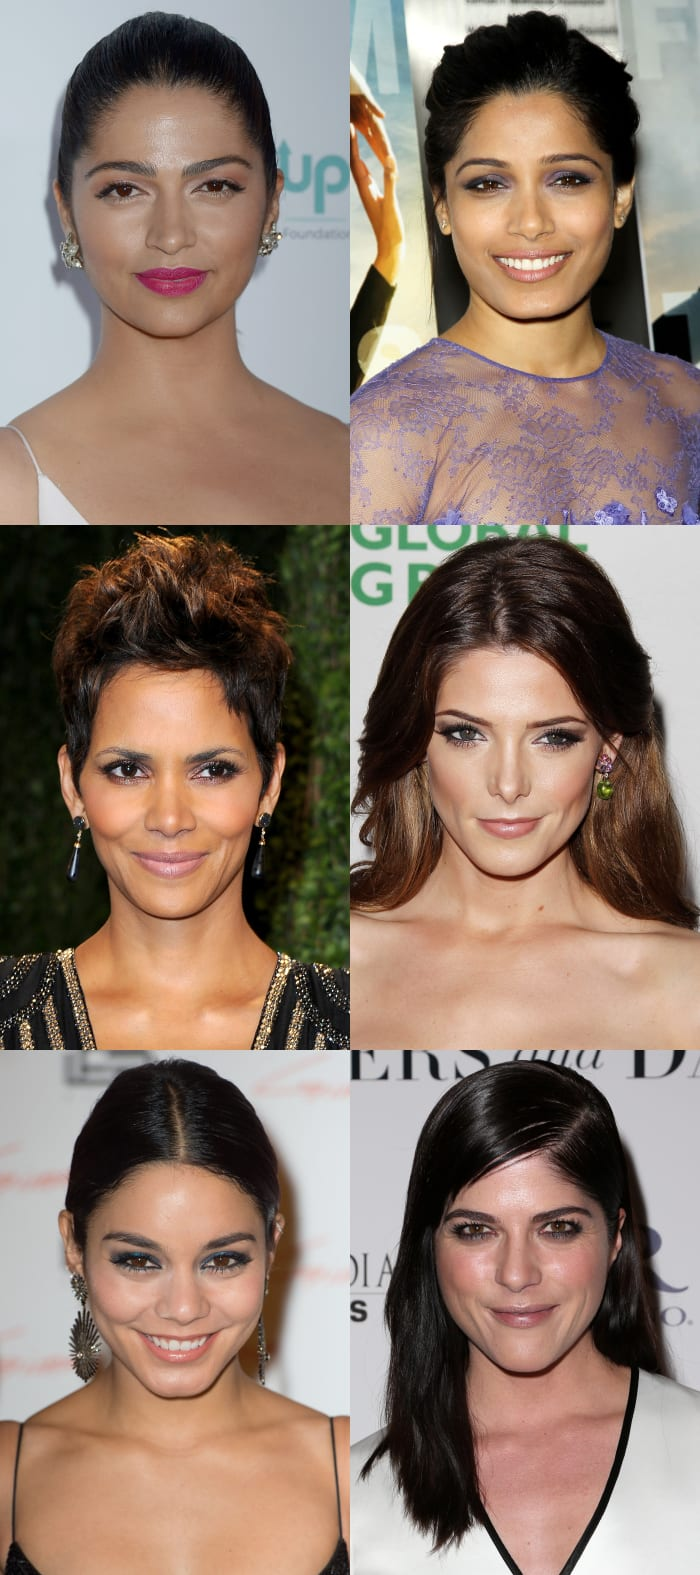 20 of the Best Haircuts for Every Face Shape | Who What Wear